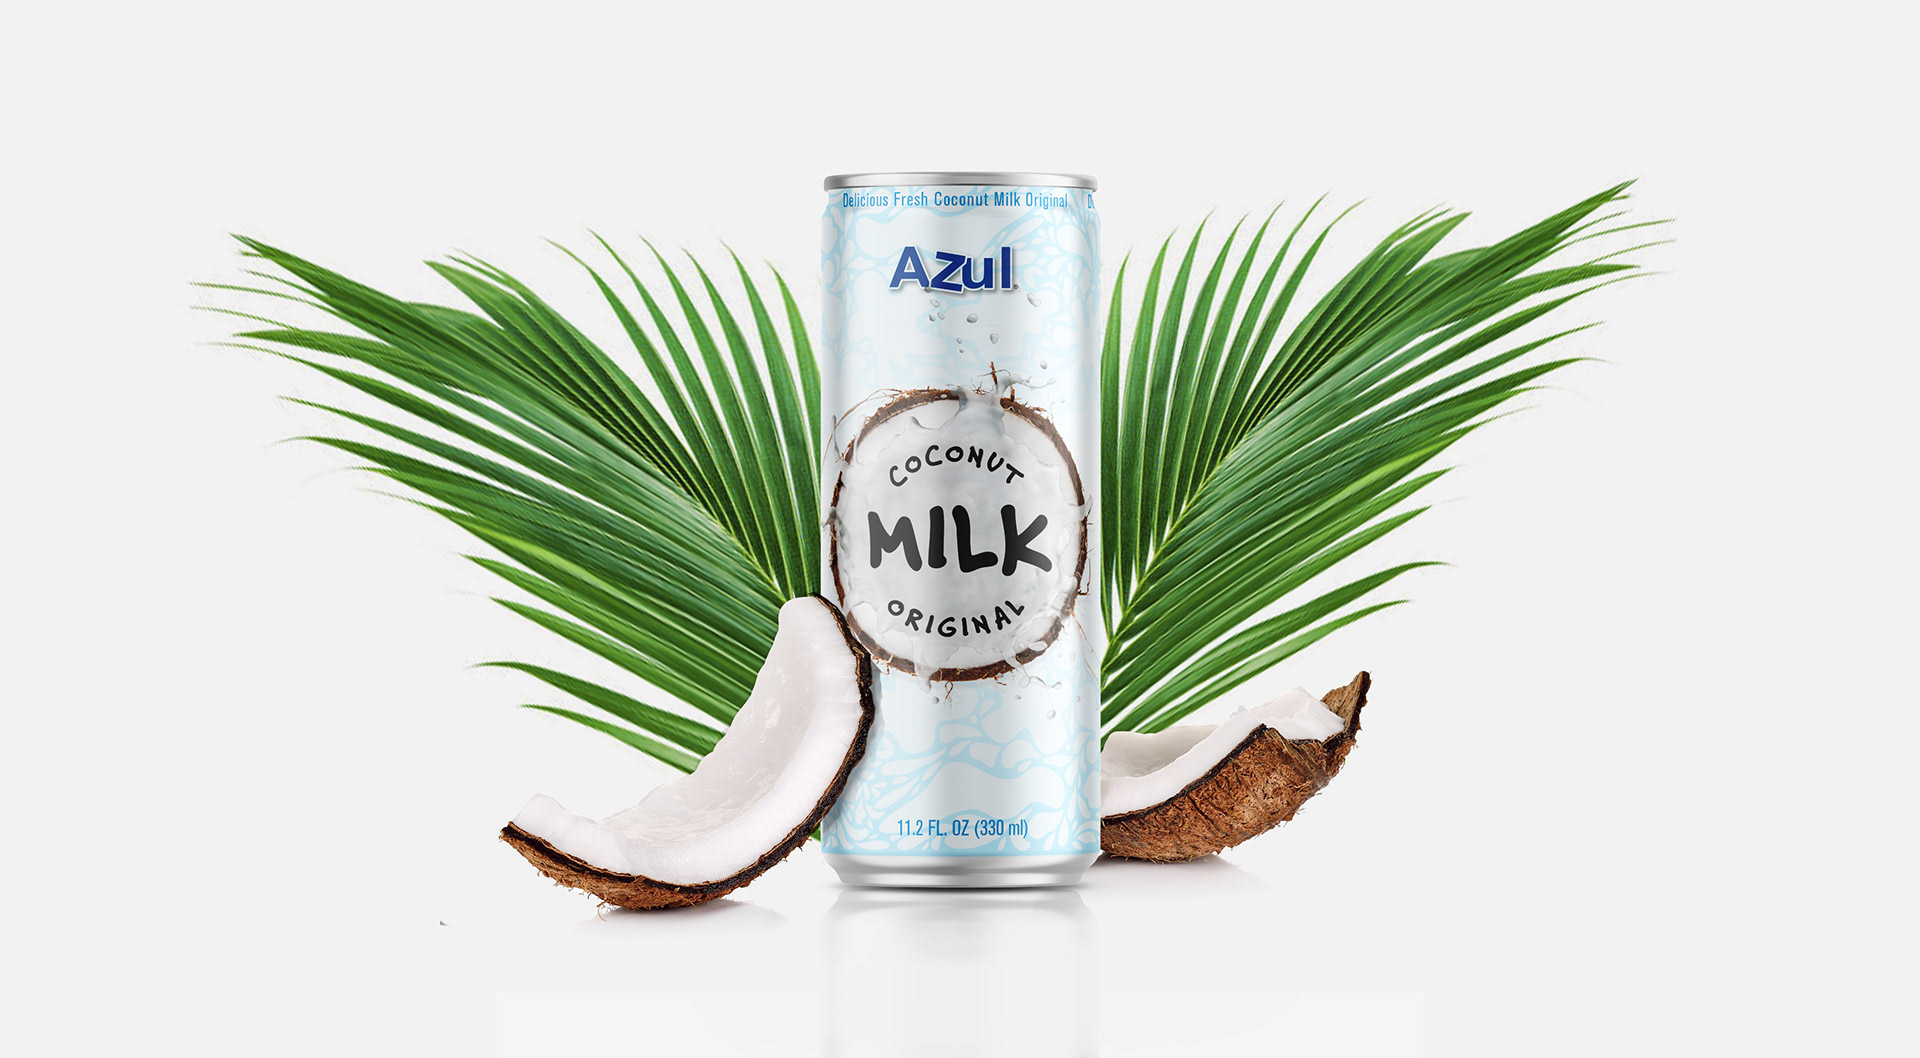 Azul Coconut Milk